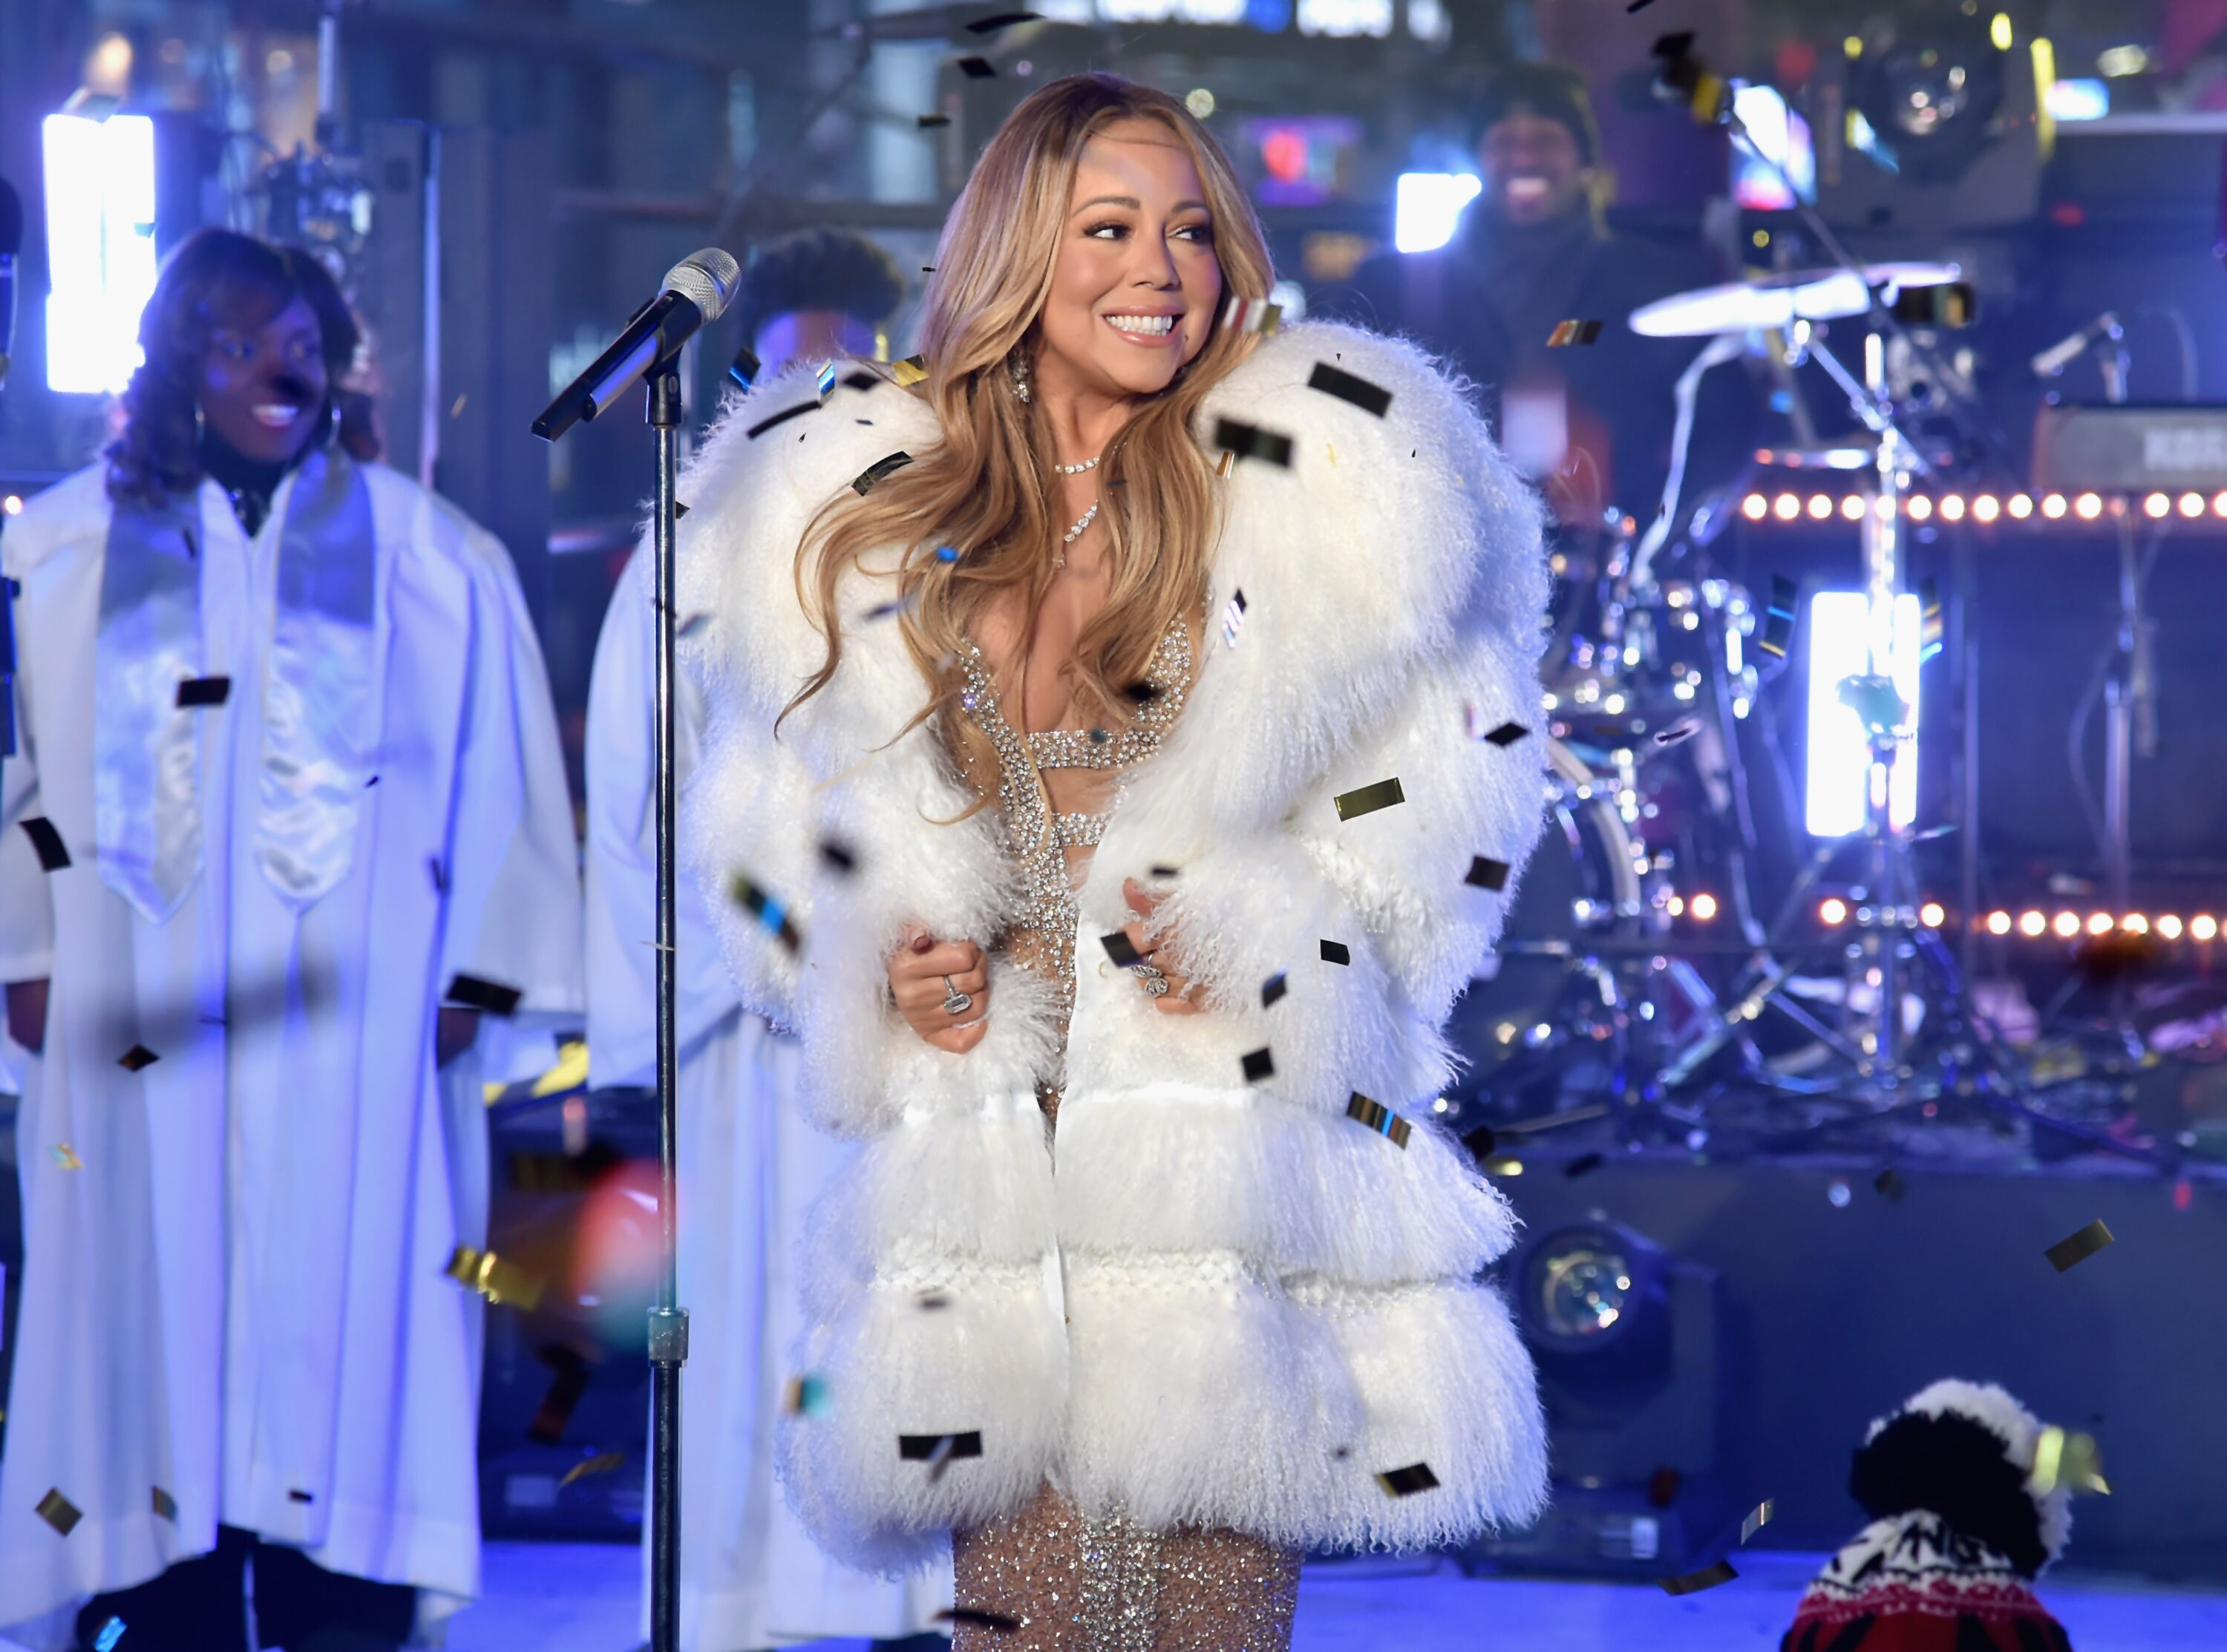 Mariah Carey at a Christmas concert/ Source: Getty Images